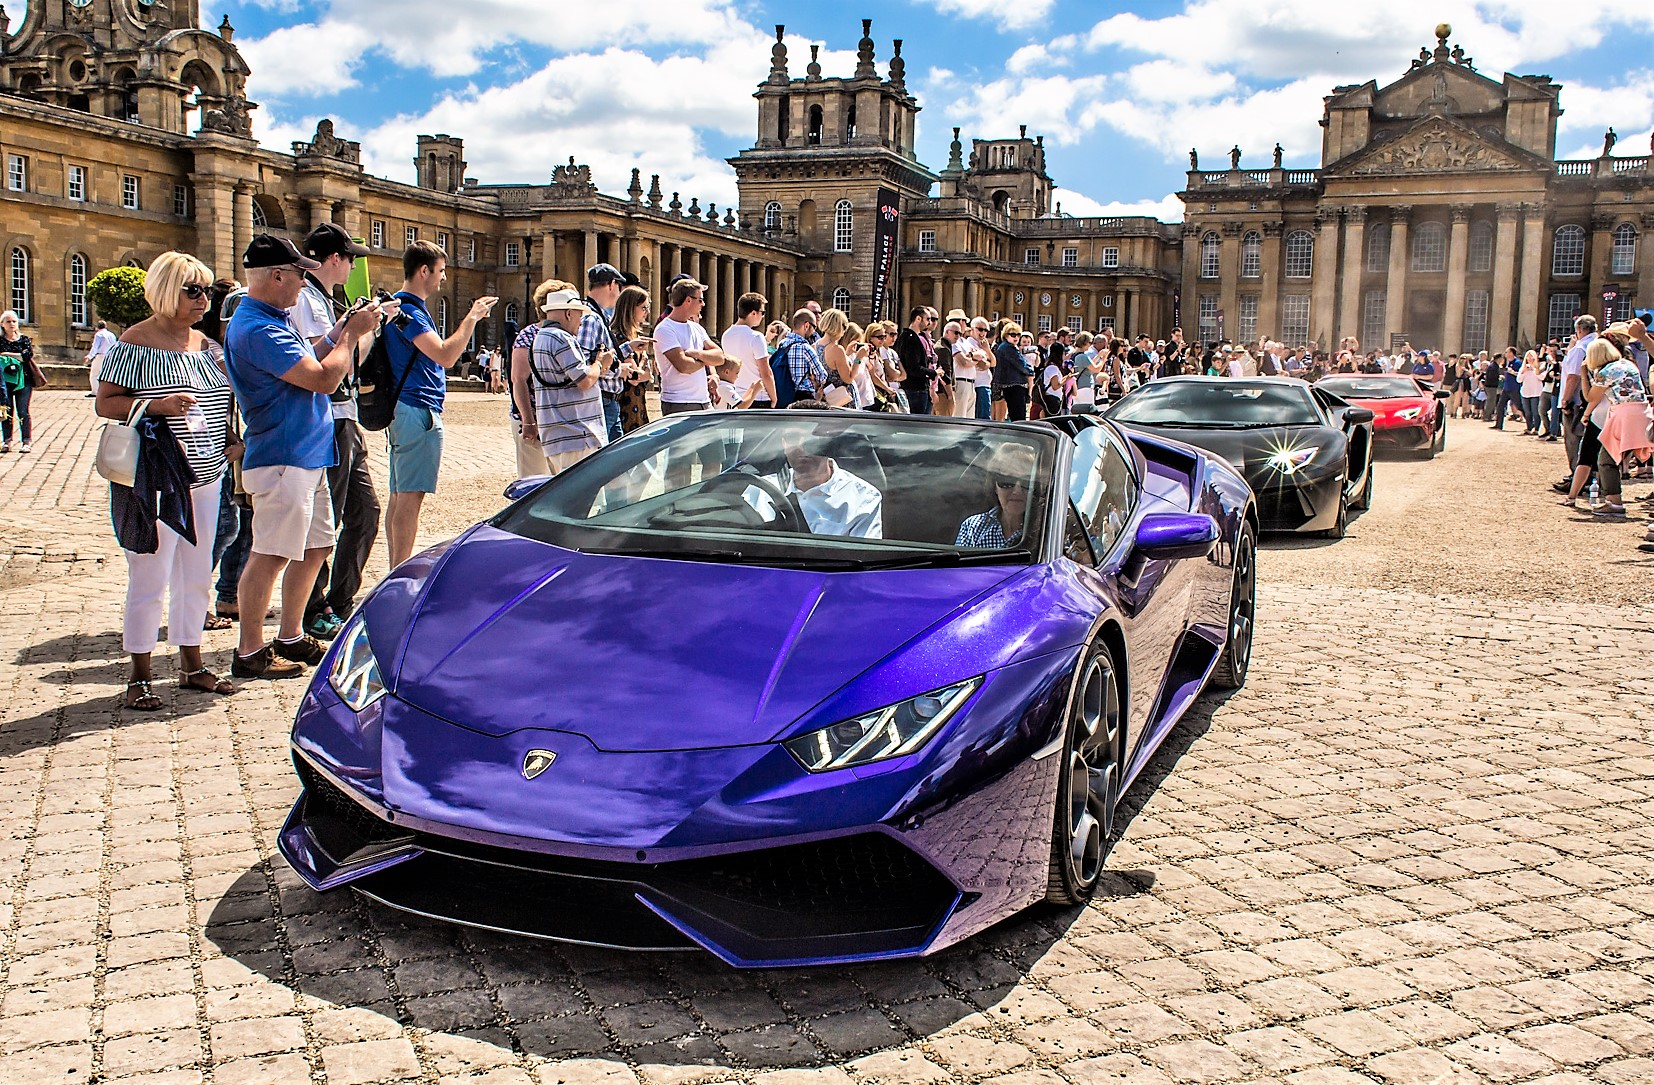 Supercars roll past the crowd at Blenheim Palace | Blenheim